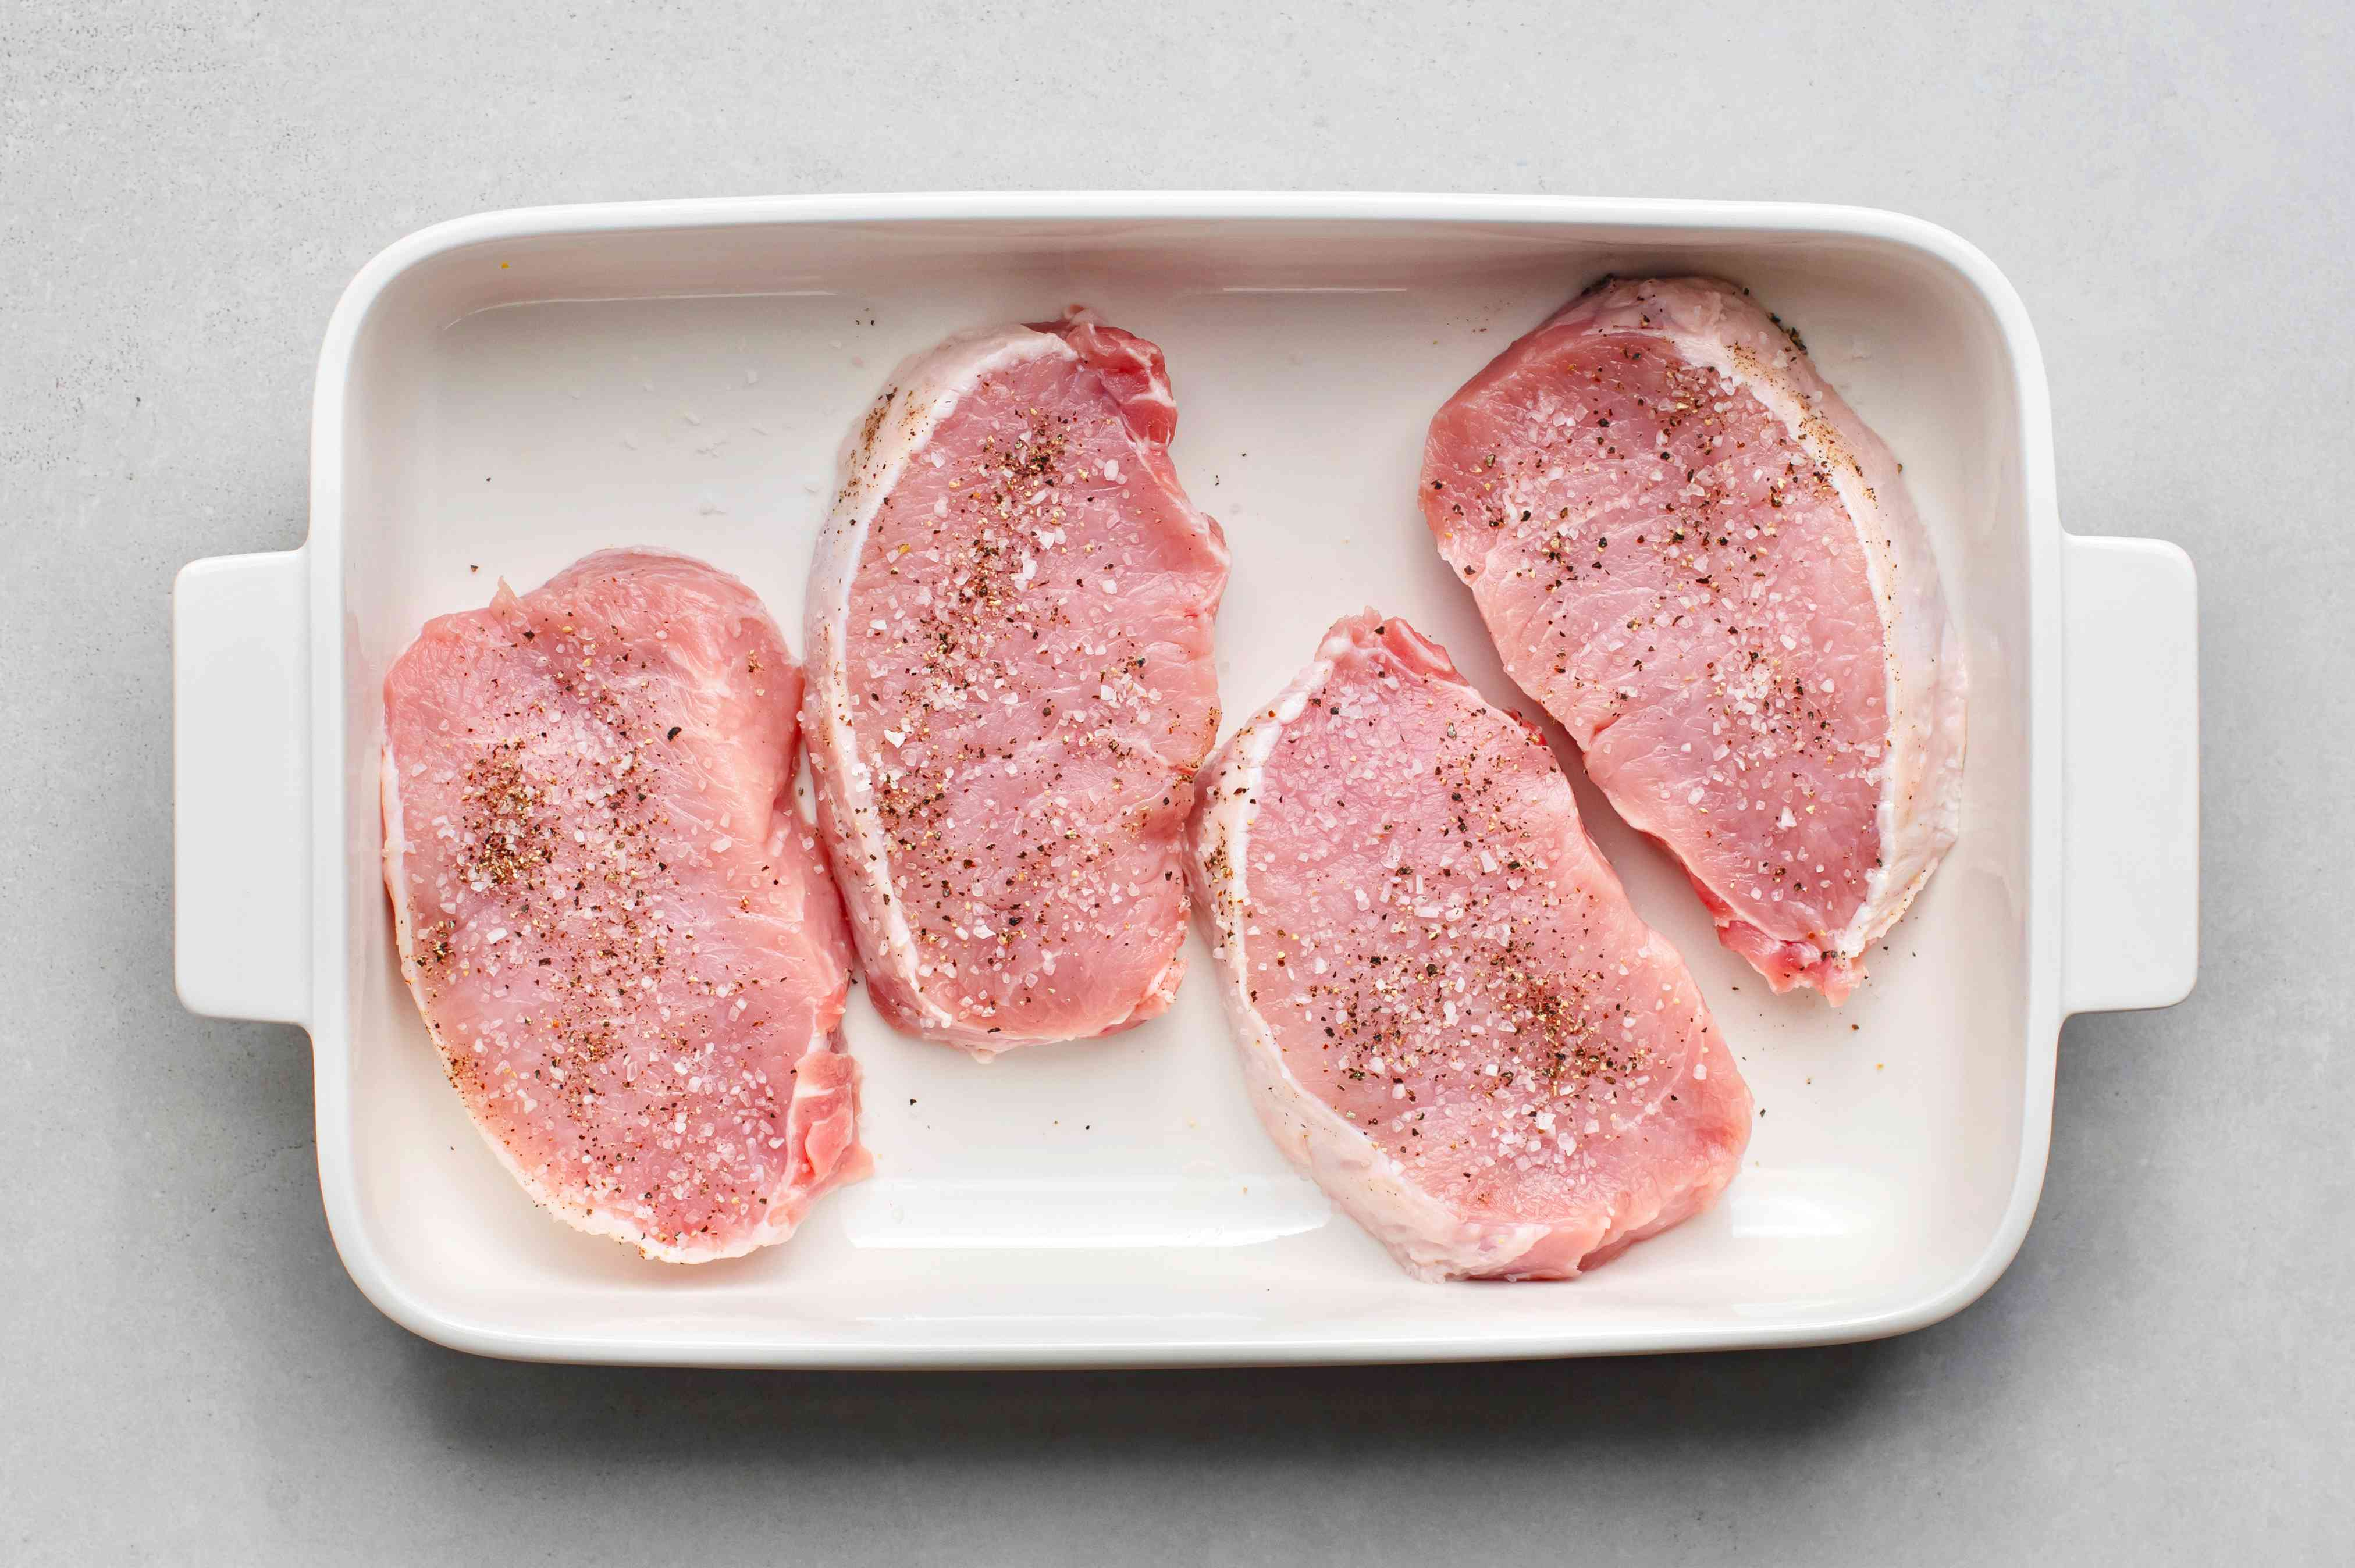 Pork chops in a baking dish sprinkled with salt and pepper